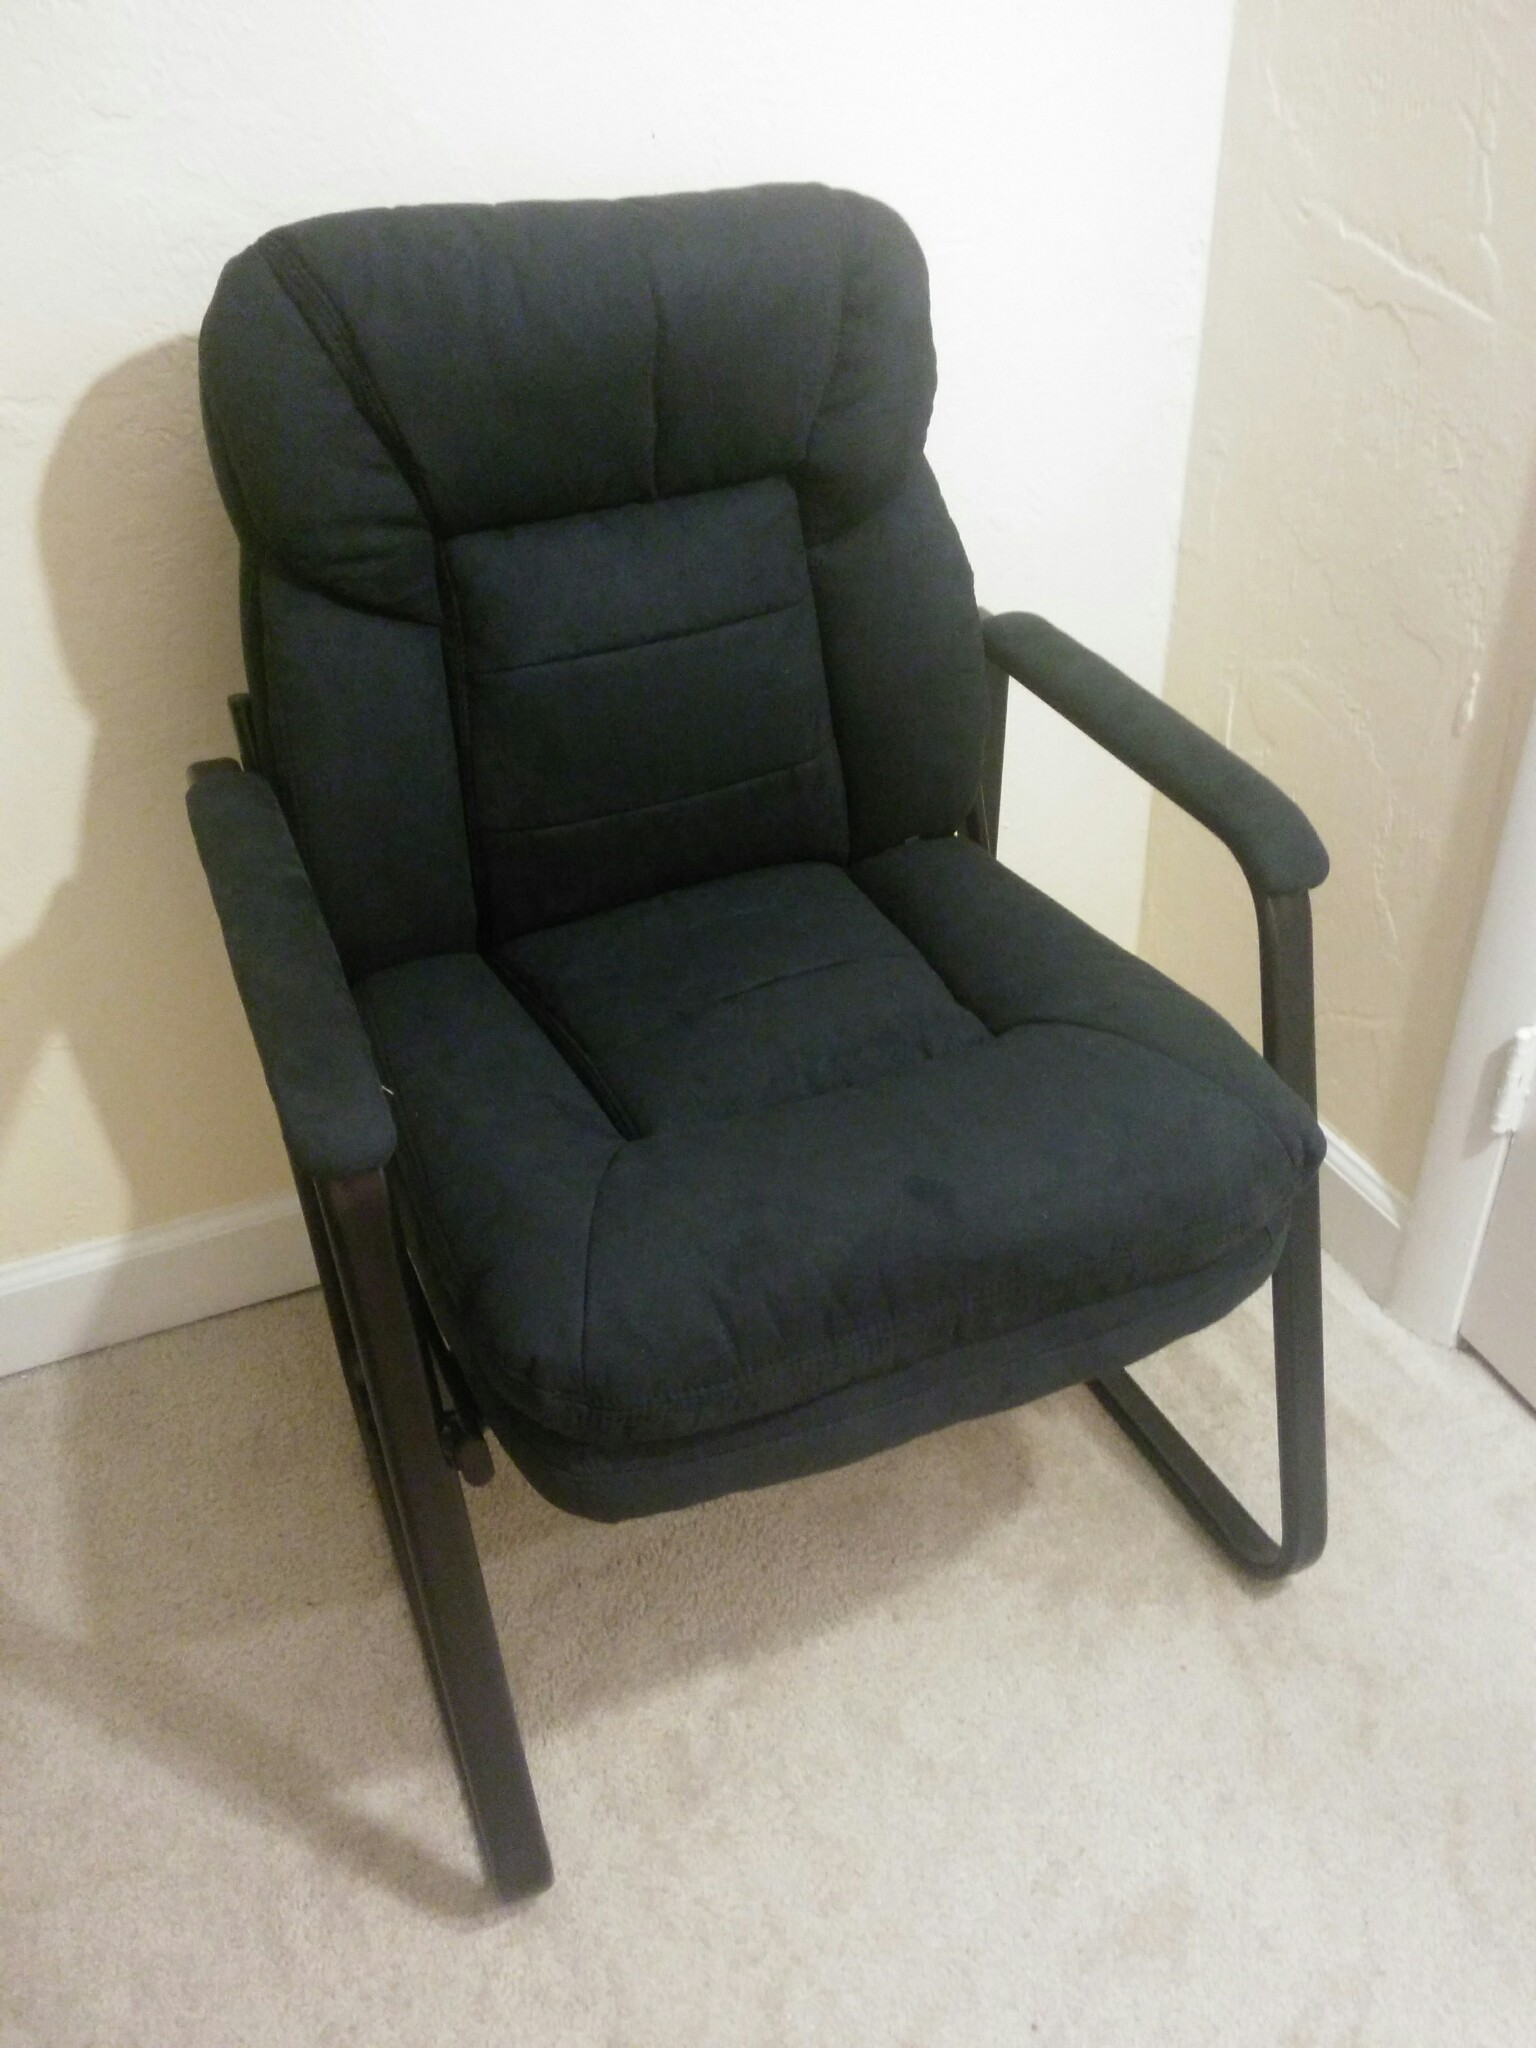 My Awesome New Chair